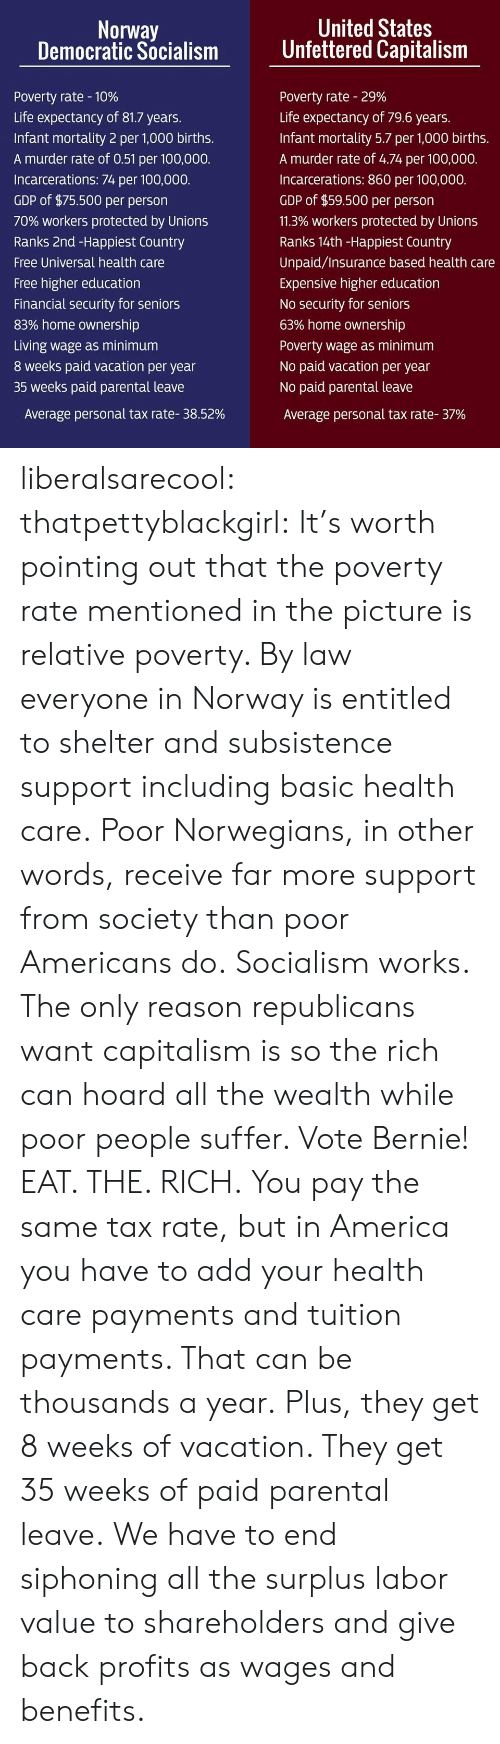 America, Anaconda, and Life: Norway  Democratic Socialism  United States  Unfettered Capitalism  Poverty rate-10%  Life expectancy of 81.7 years  Infant mortality 2 per 1,000 births.  A murder rate of 0.51 per 100,000.  Incarcerations: 74 per 100,000.  GDP of $75.500 per person  70% workers protected by Unions  Ranks 2nd -Happiest Country  Free Universal health care  Free higher education  Financial security for seniors  83% home ownership  Living wage as minimum  8 weeks paid vacation per year  35 weeks paid parental leave  Poverty rate-29%  Life expectancy of 79.6 years.  Infant mortality 5.7 per 1,000 births.  A murder rate of 4.74 per 100,000.  Incarcerations: 860 per 100,000.  GDP of $59.500 per person  11.3% workers protected by Unions  Ranks 14th-Happiest Country  Unpaid/Insurance based health care  Expensive higher education  No security for seniors  63% home ownership  Poverty wage as minimum  No paid vacation per year  No paid parental leave  Average personal tax rate-37%  Average personal tax rate-38.52% liberalsarecool: thatpettyblackgirl:   It's  worth pointing out that the poverty rate mentioned in the picture is  relative poverty. By law everyone in Norway is entitled to shelter and  subsistence support including basic health care. Poor Norwegians, in other words, receive far more support from society than poor Americans do.  Socialism works. The only reason republicans want capitalism is so the rich can hoard all the wealth while poor people suffer. Vote Bernie!   EAT. THE. RICH.     You pay the same tax rate, but in America you have to add your health care payments and tuition payments. That can be thousands a year. Plus, they get 8 weeks of vacation. They get 35 weeks of paid parental leave. We have to end siphoning all the surplus labor value to shareholders and give back profits as wages and benefits.